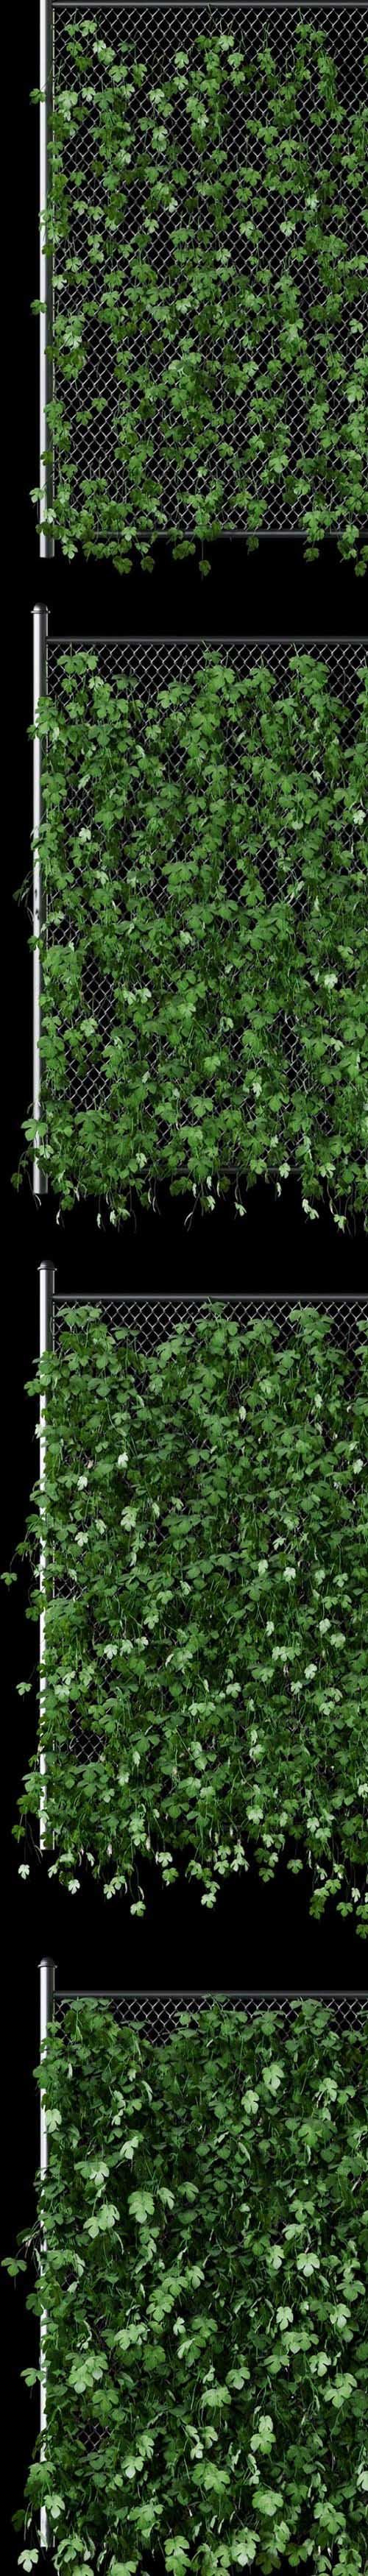 Leaves of hops on the fence net